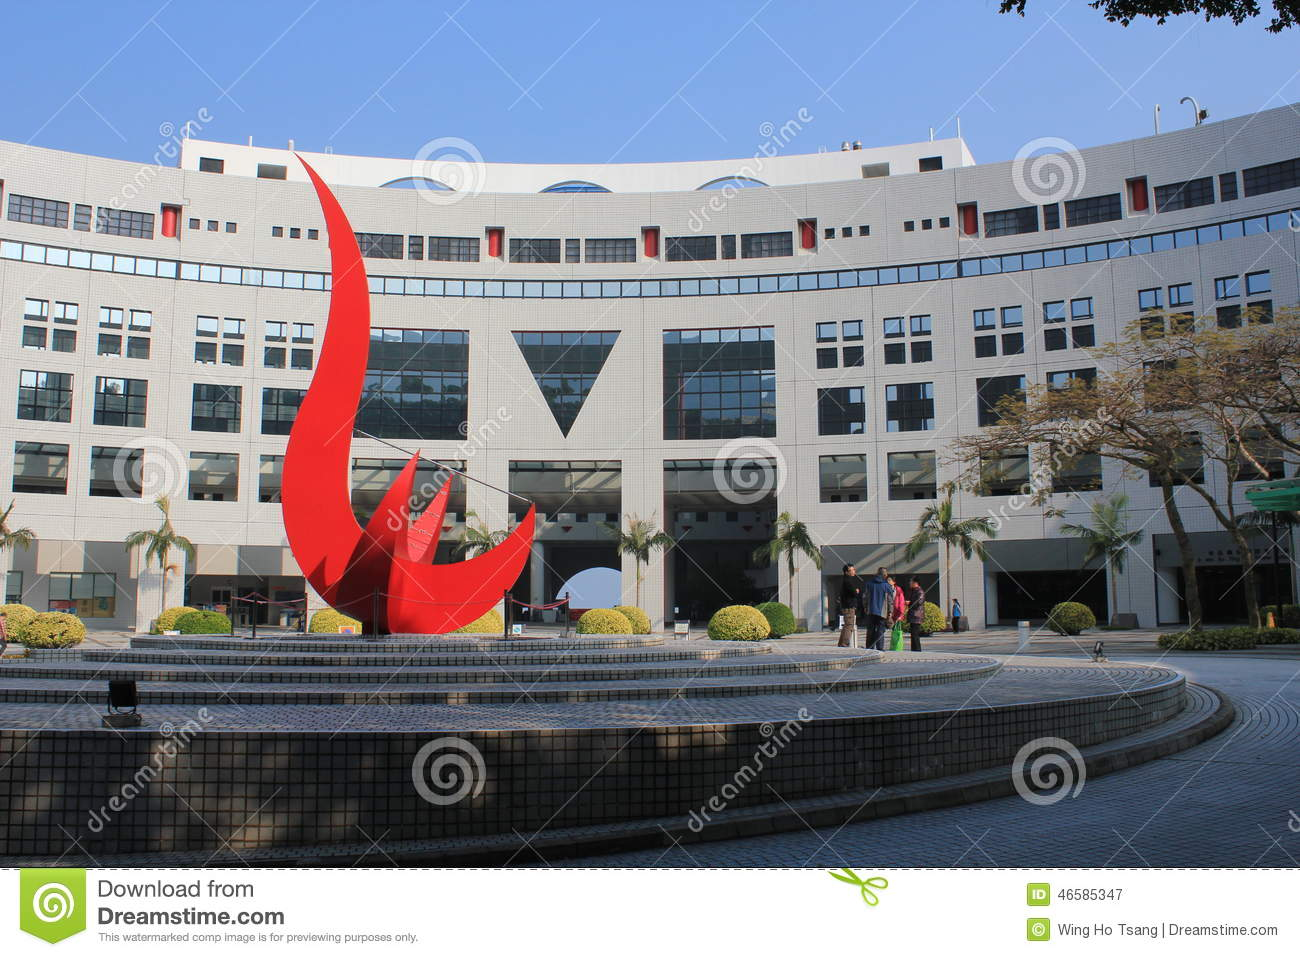 University of Science and Technology in Hong Kong